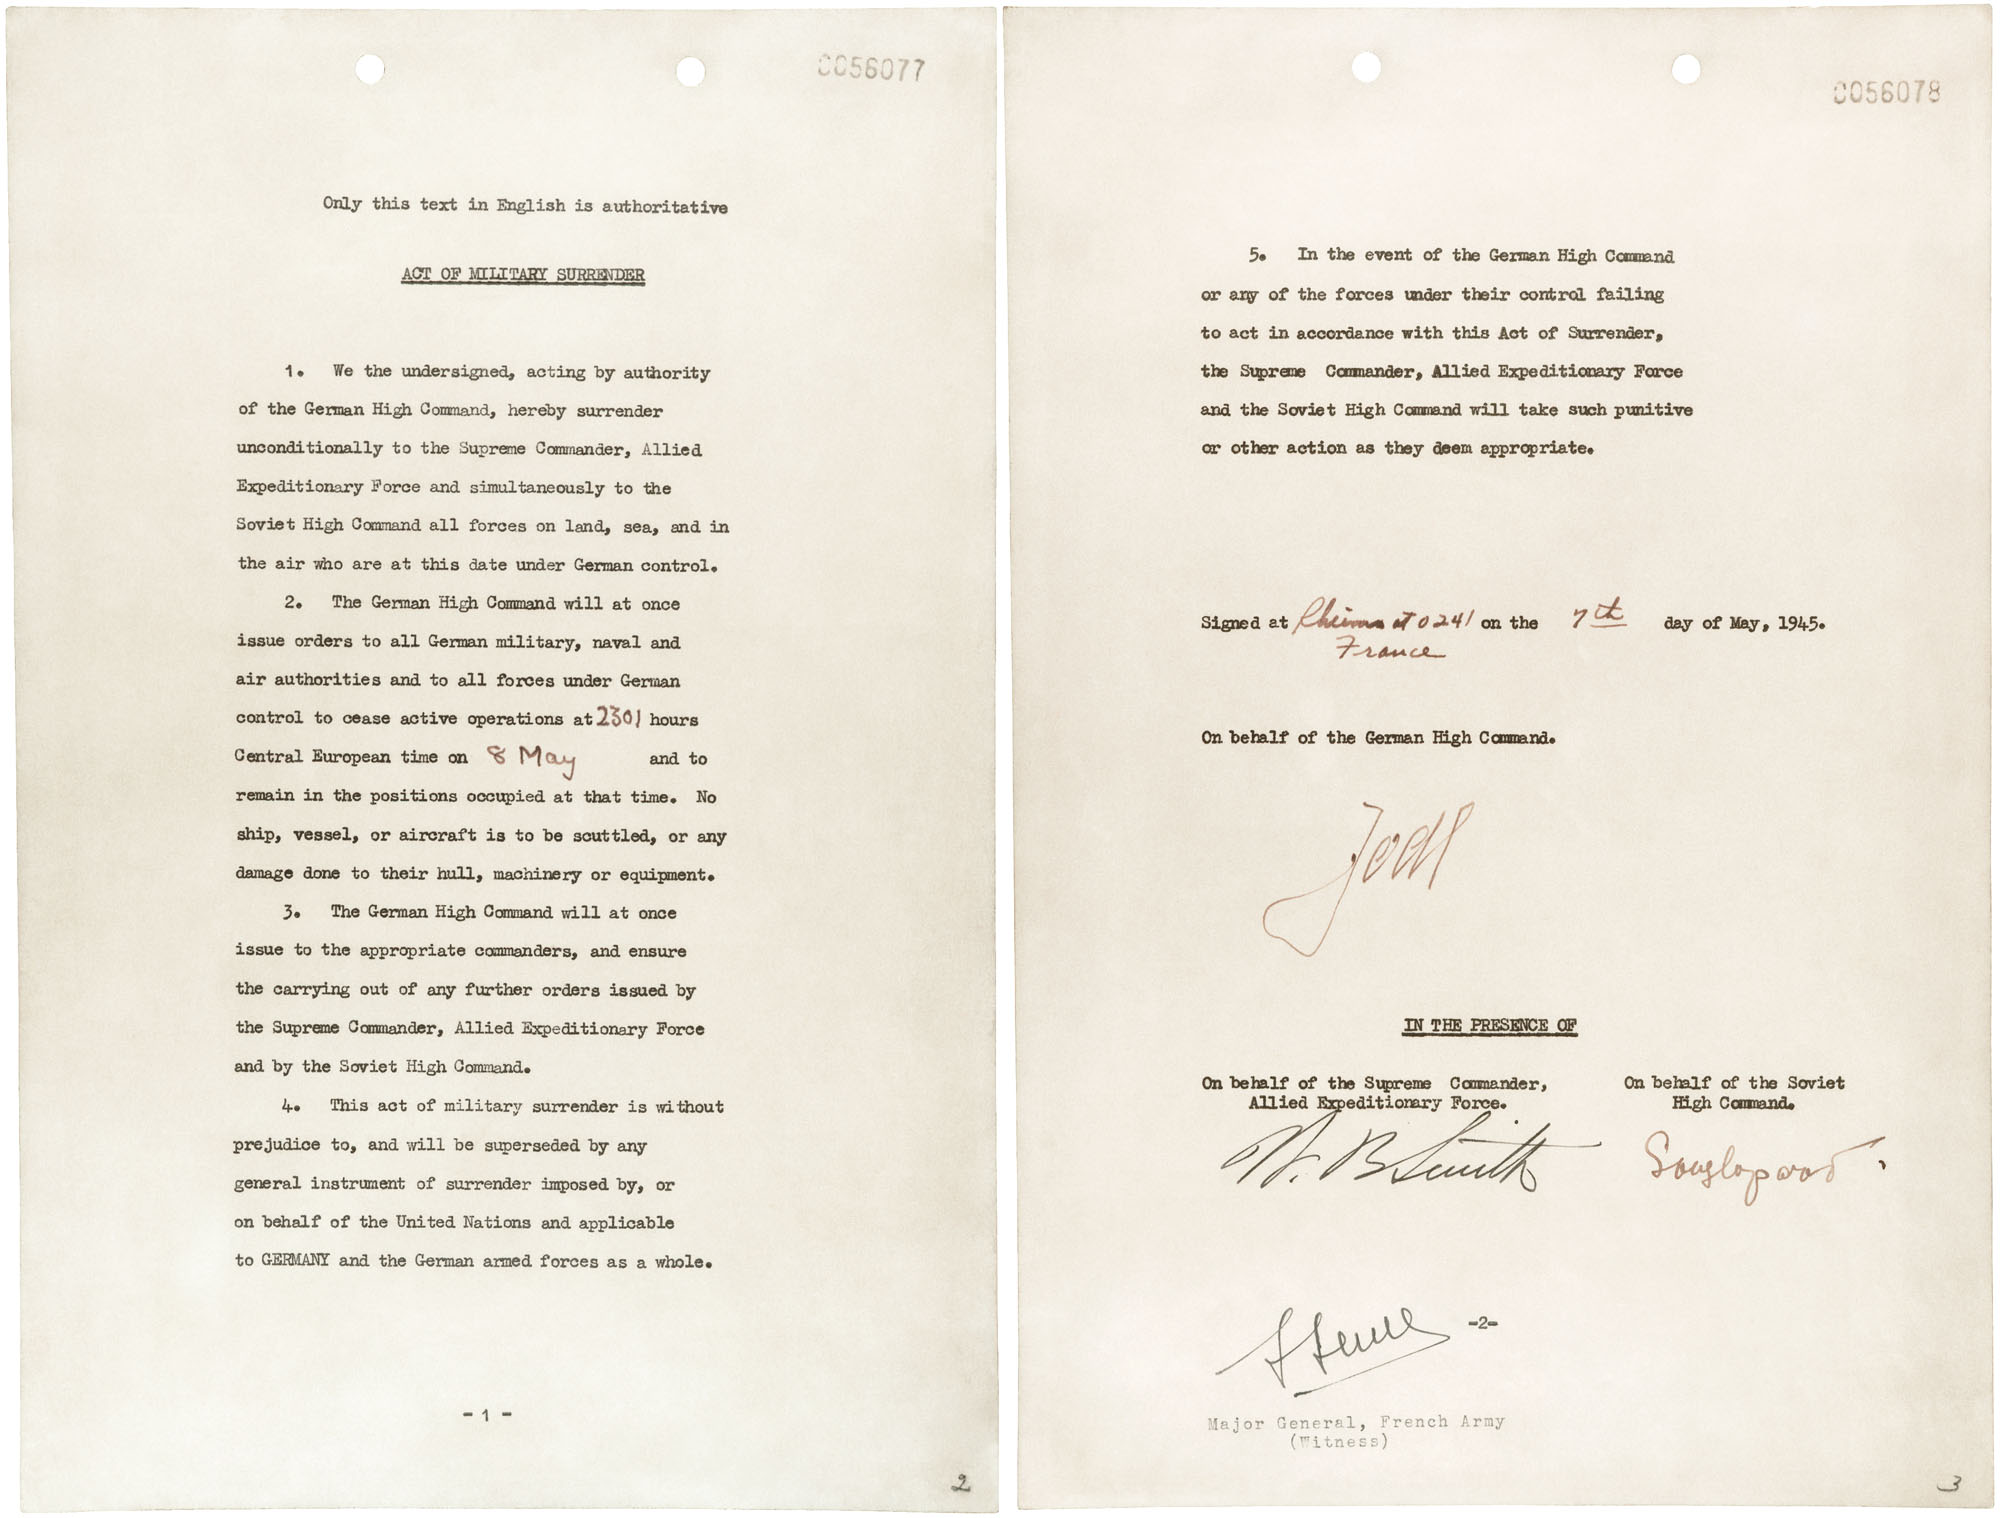 The instrument of surrender, signed May 7, 1945